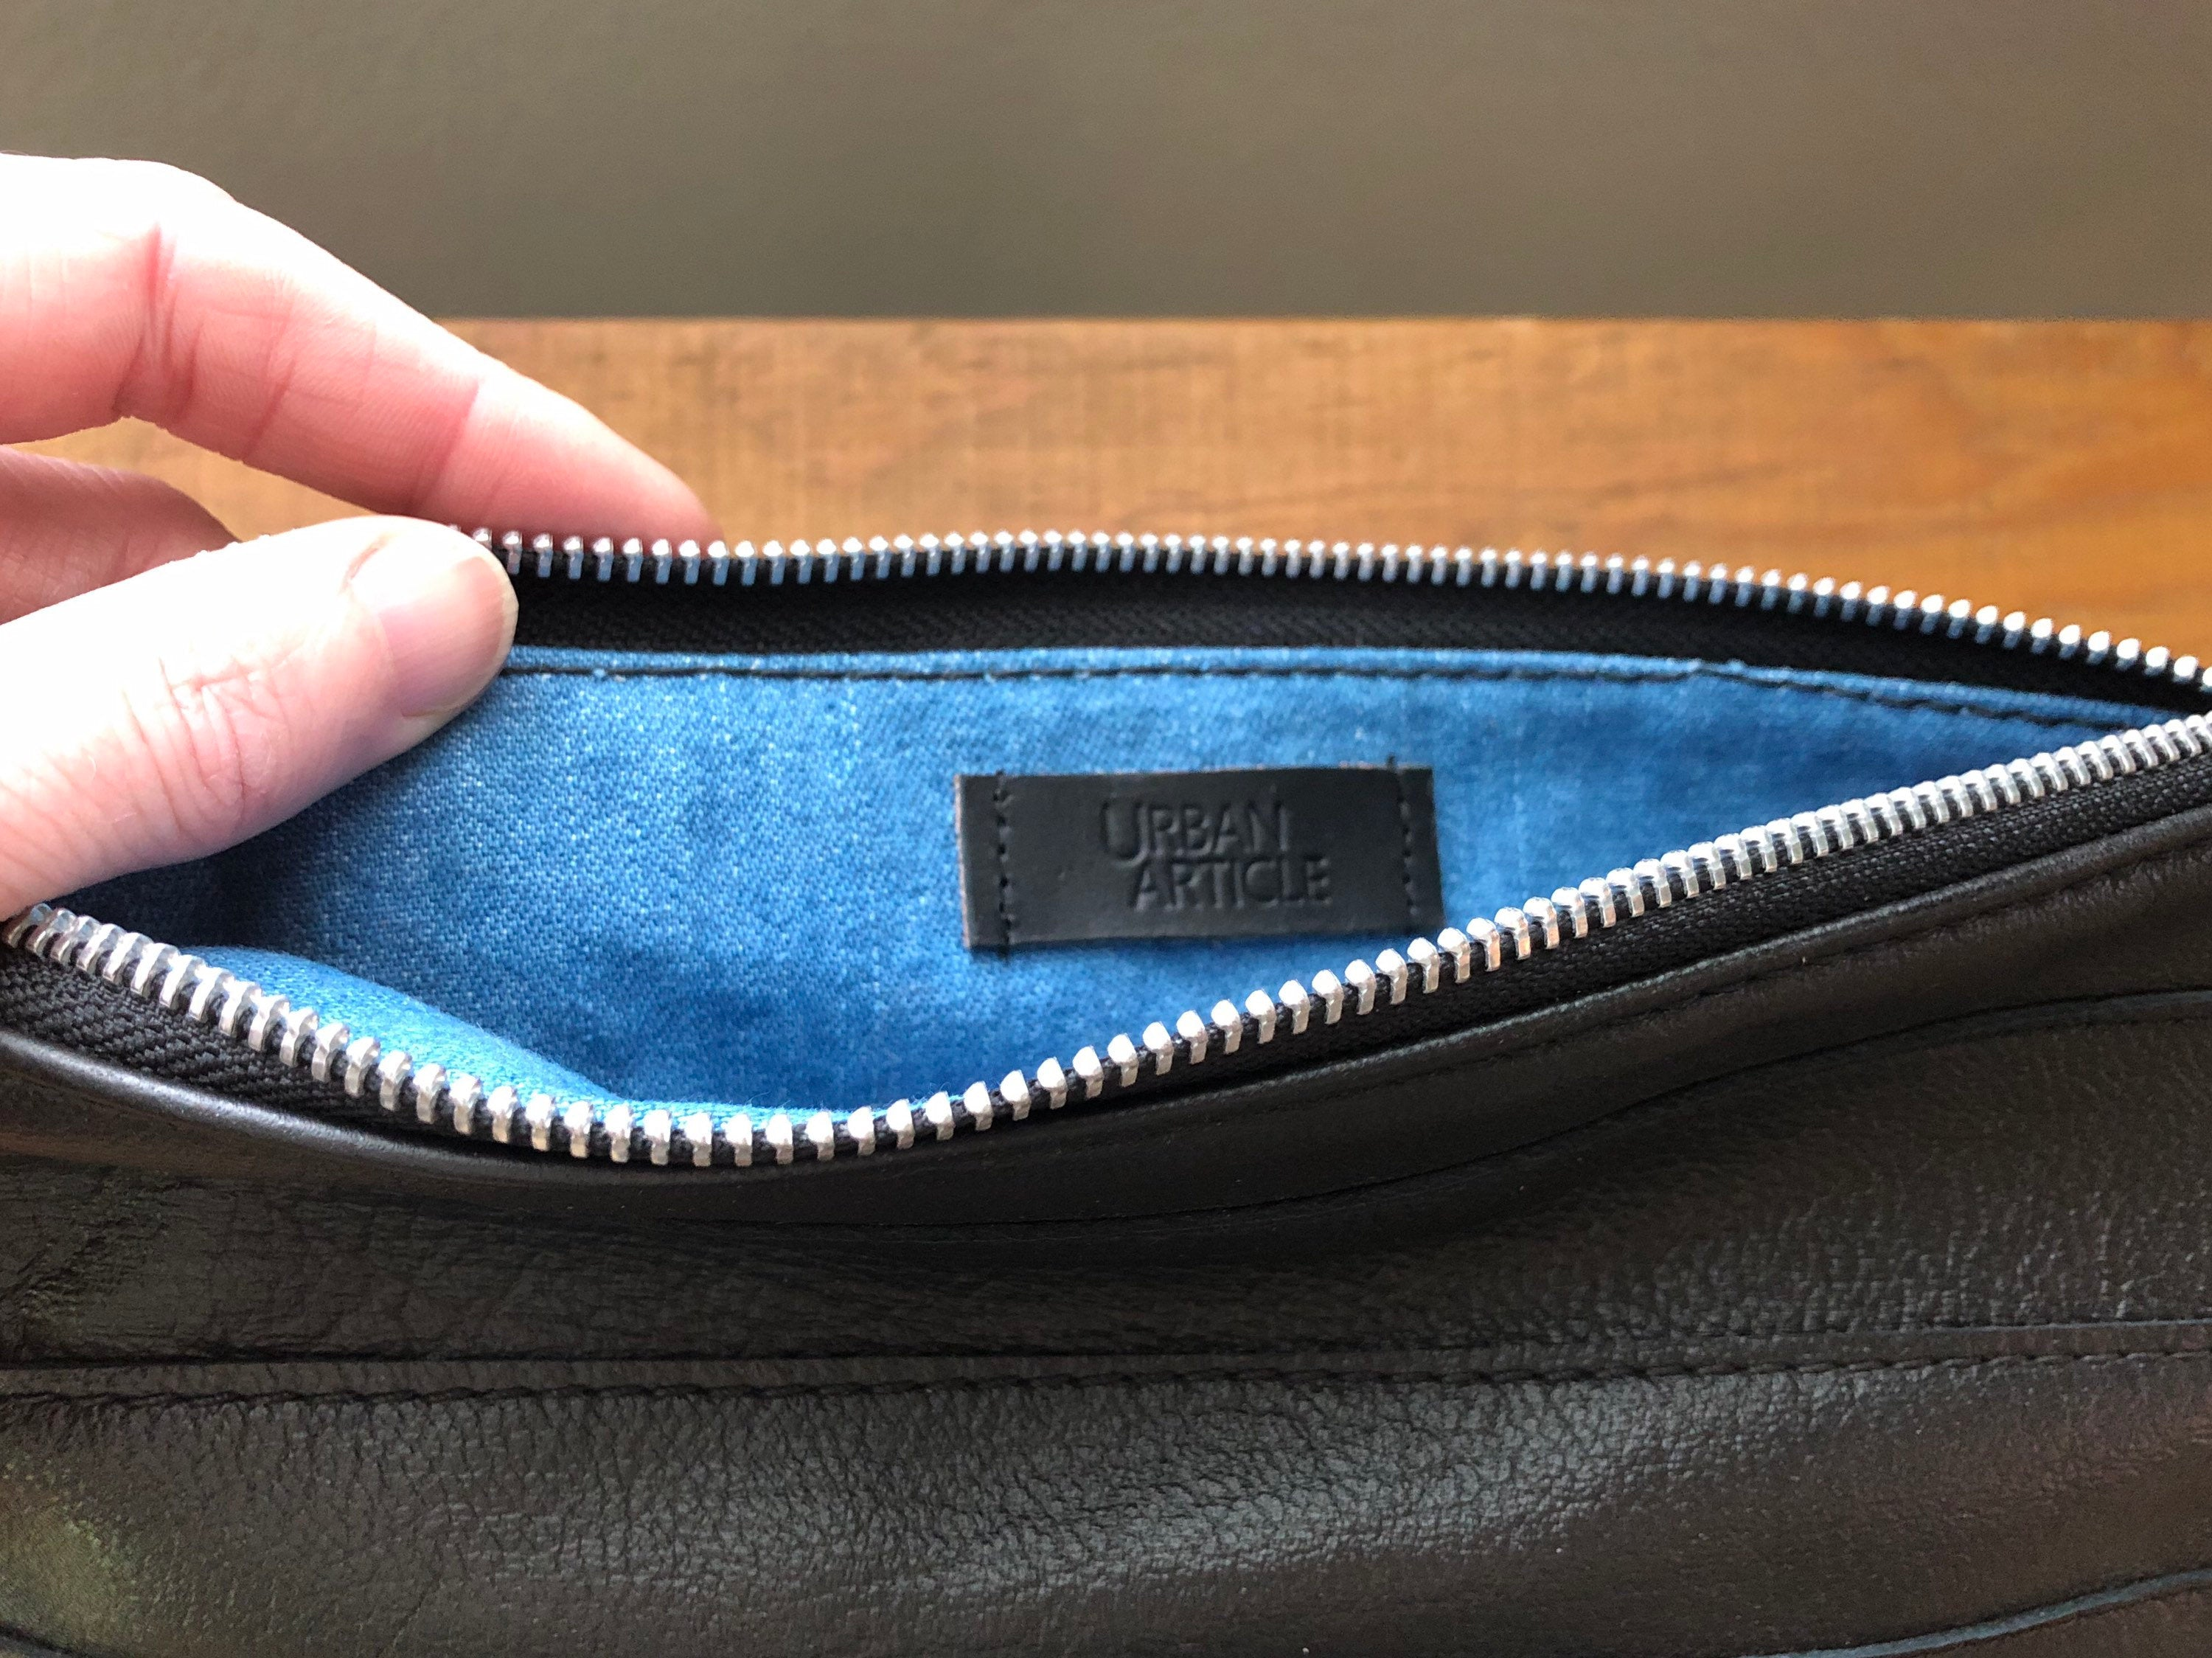 Blue denim interior of black leather and denim clutch, showing Urban Article tag